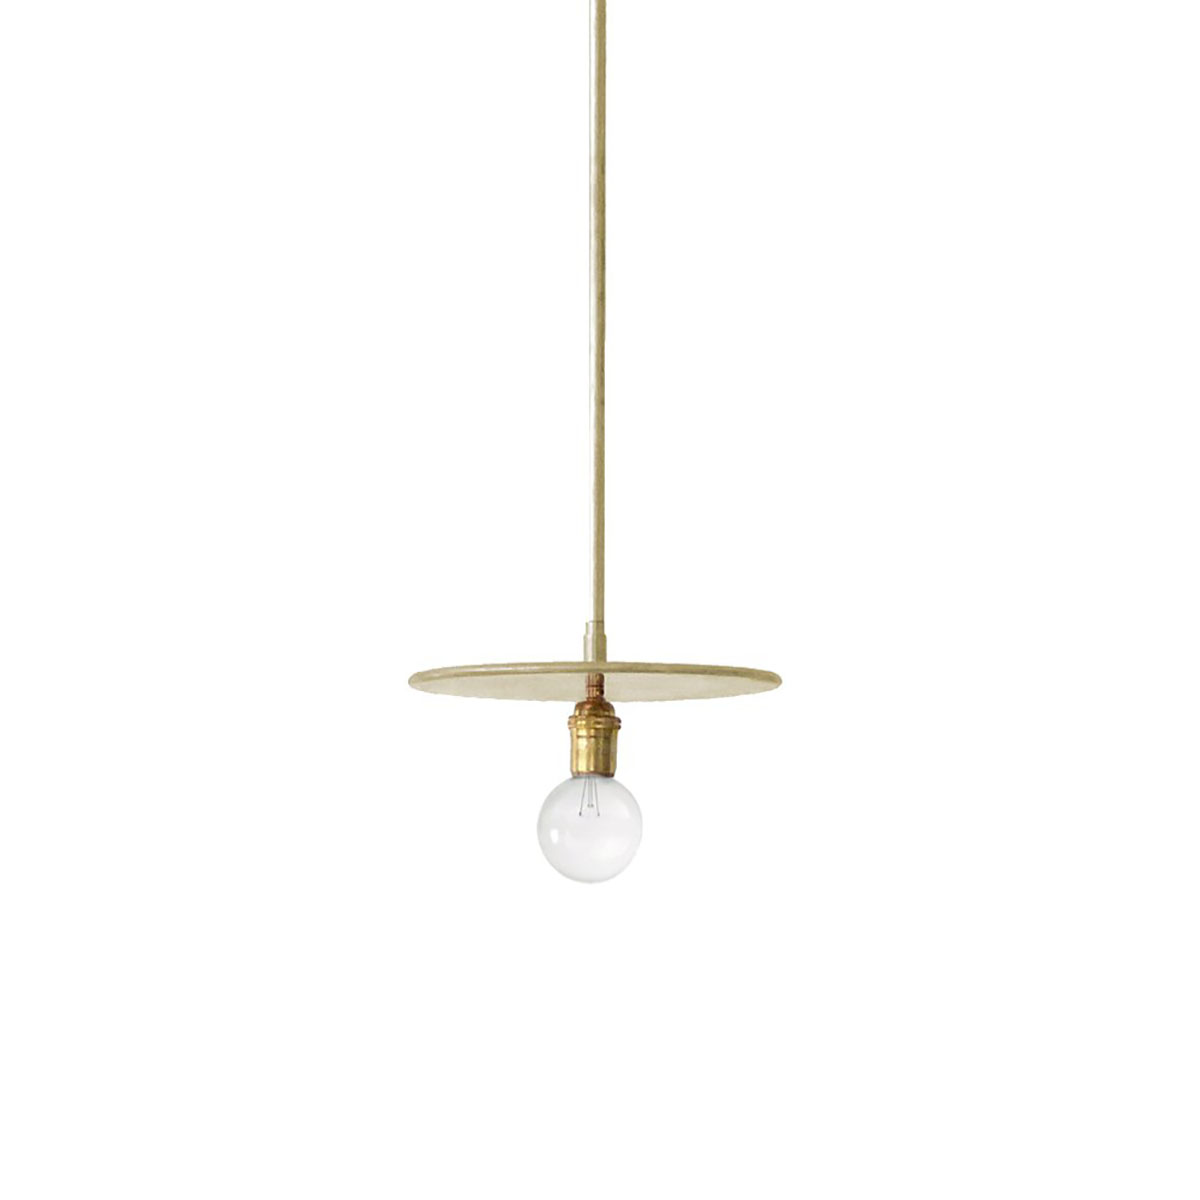 Workstead Industrial Pendant Lamp